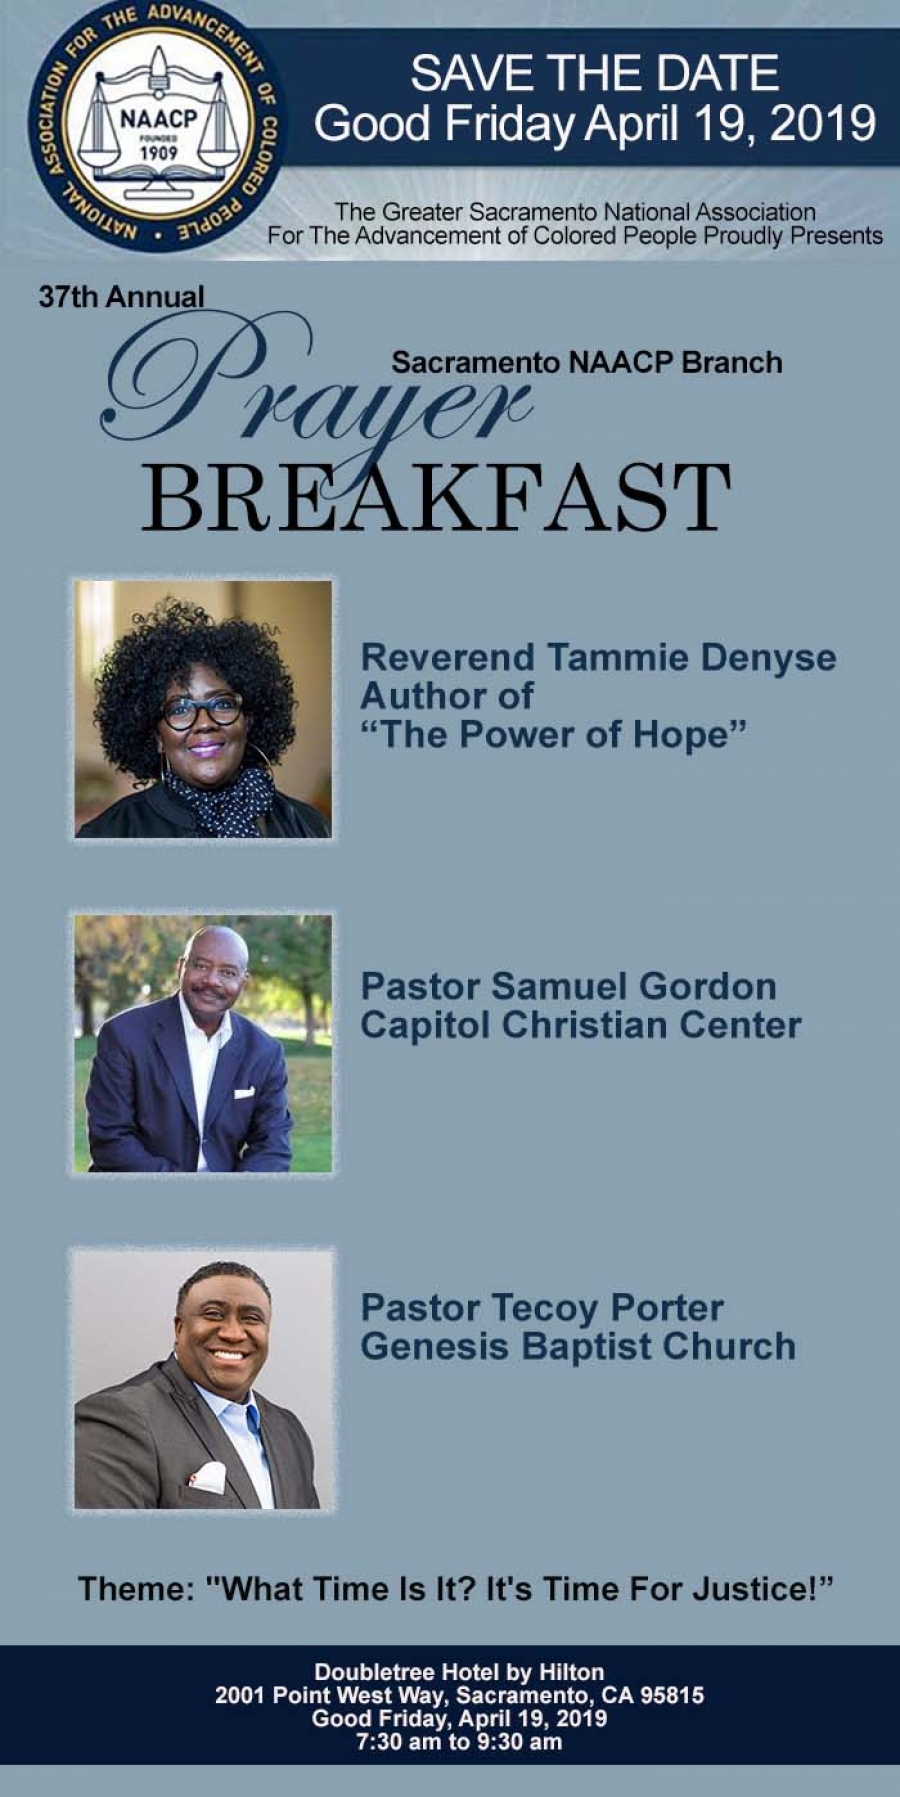 SAVE THE DATE! 37th Annual Sacramento NAACP Branch PRAYER BREAKFAST - April 19th